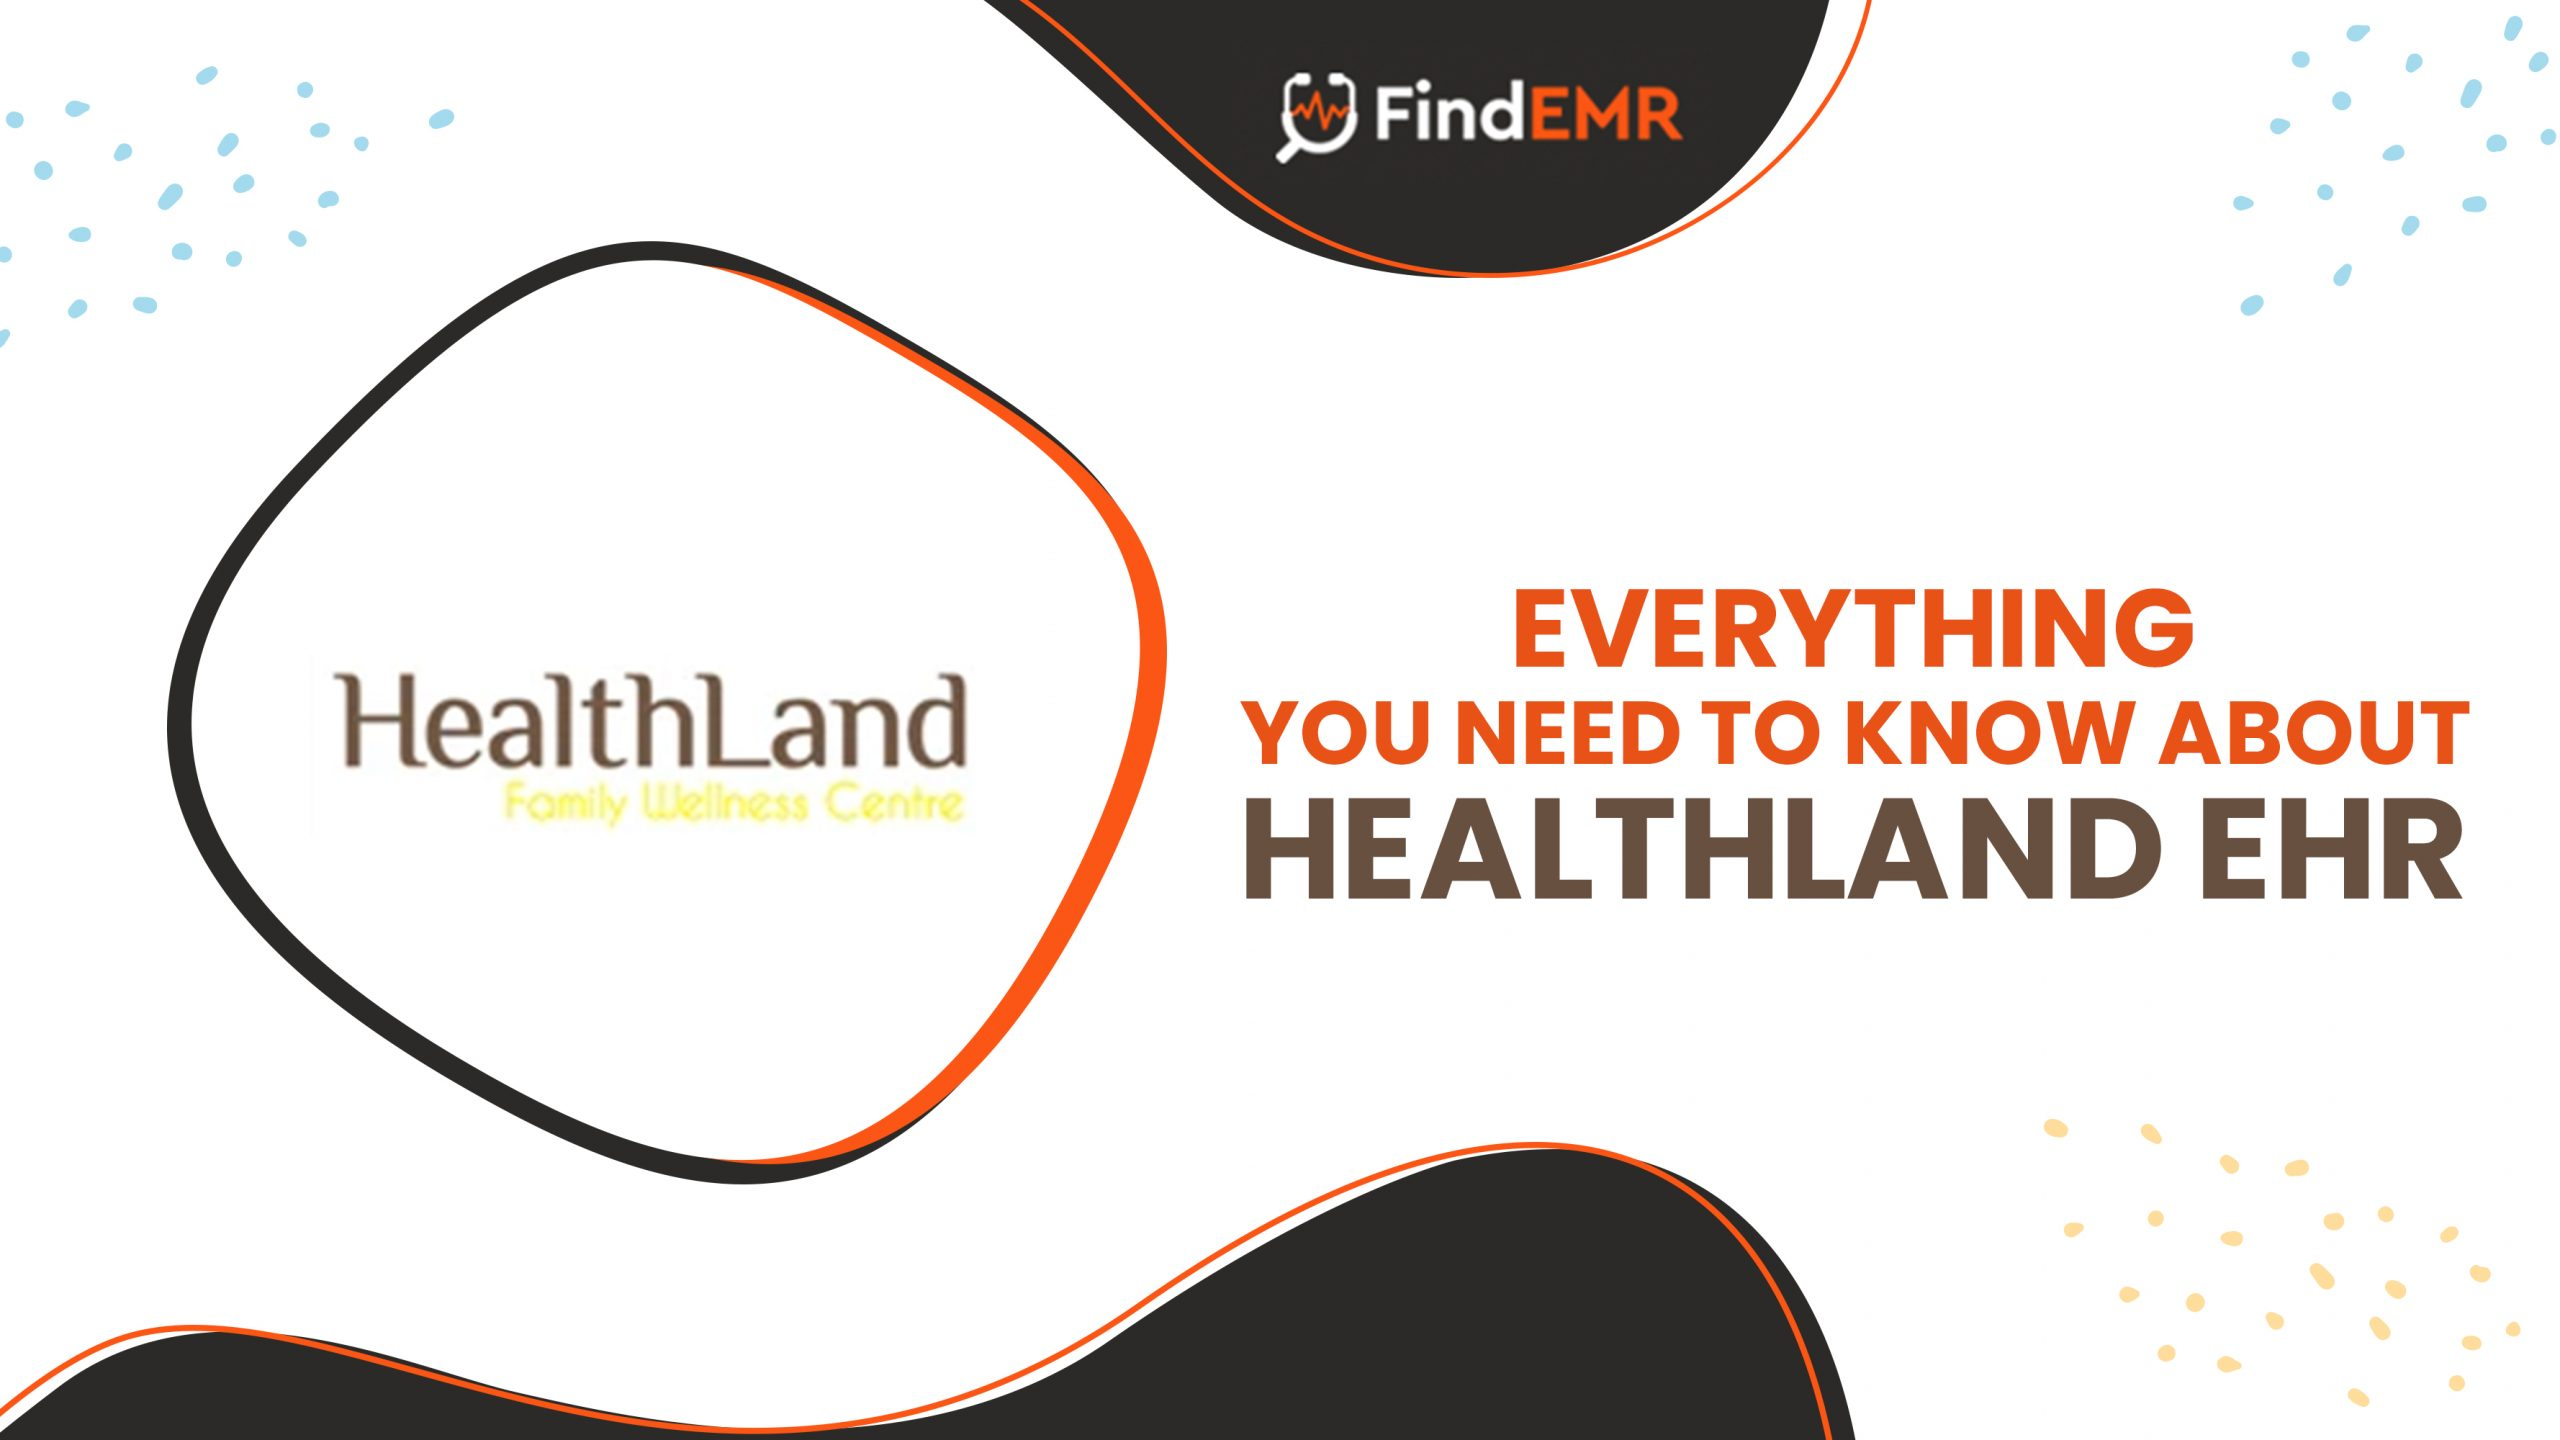 Everything You Need to Know About Healthland Ehr